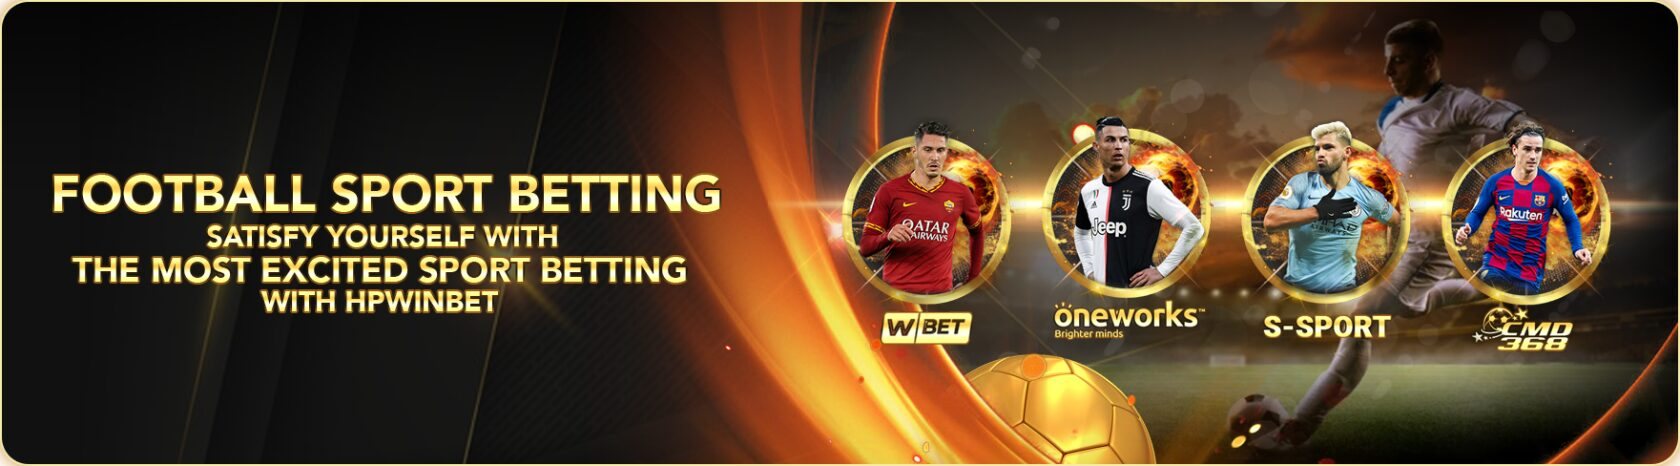 Hpwinbet Trusted Online Casino Malaysia Live Casino Free Credit Sign Up